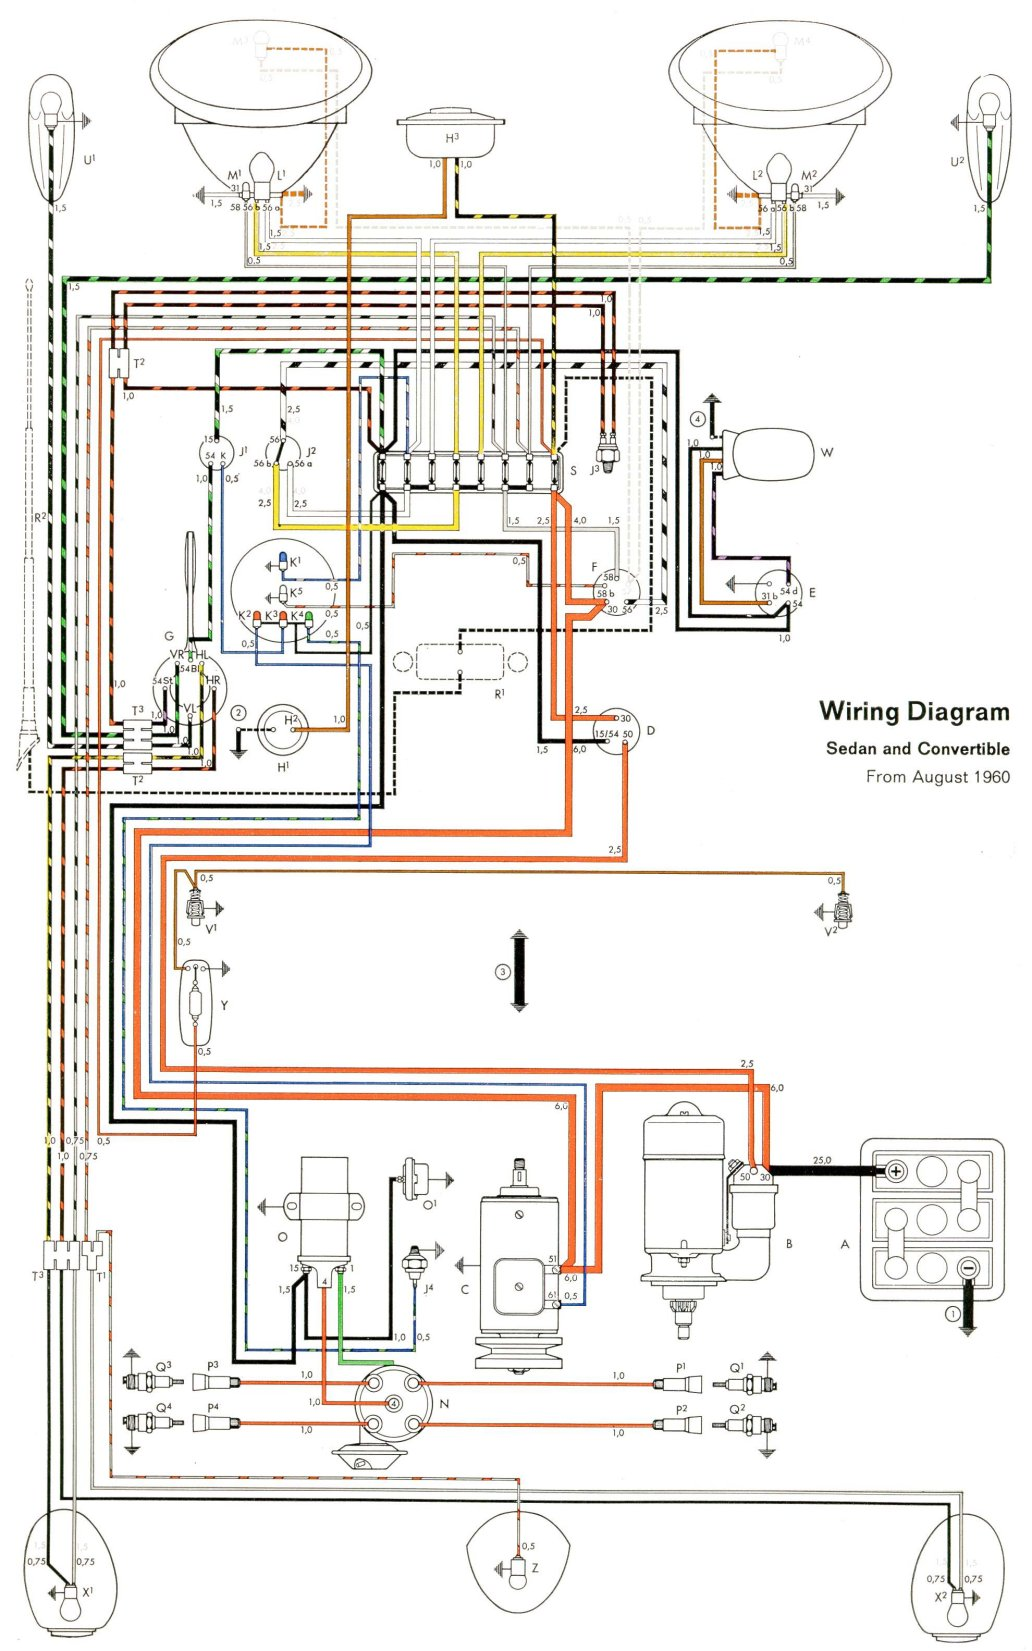 73 Beetle Wiring Diagram Automotive 74 Vw For Altinator Thesamba Com Type 1 Diagrams Rh 1973 Super